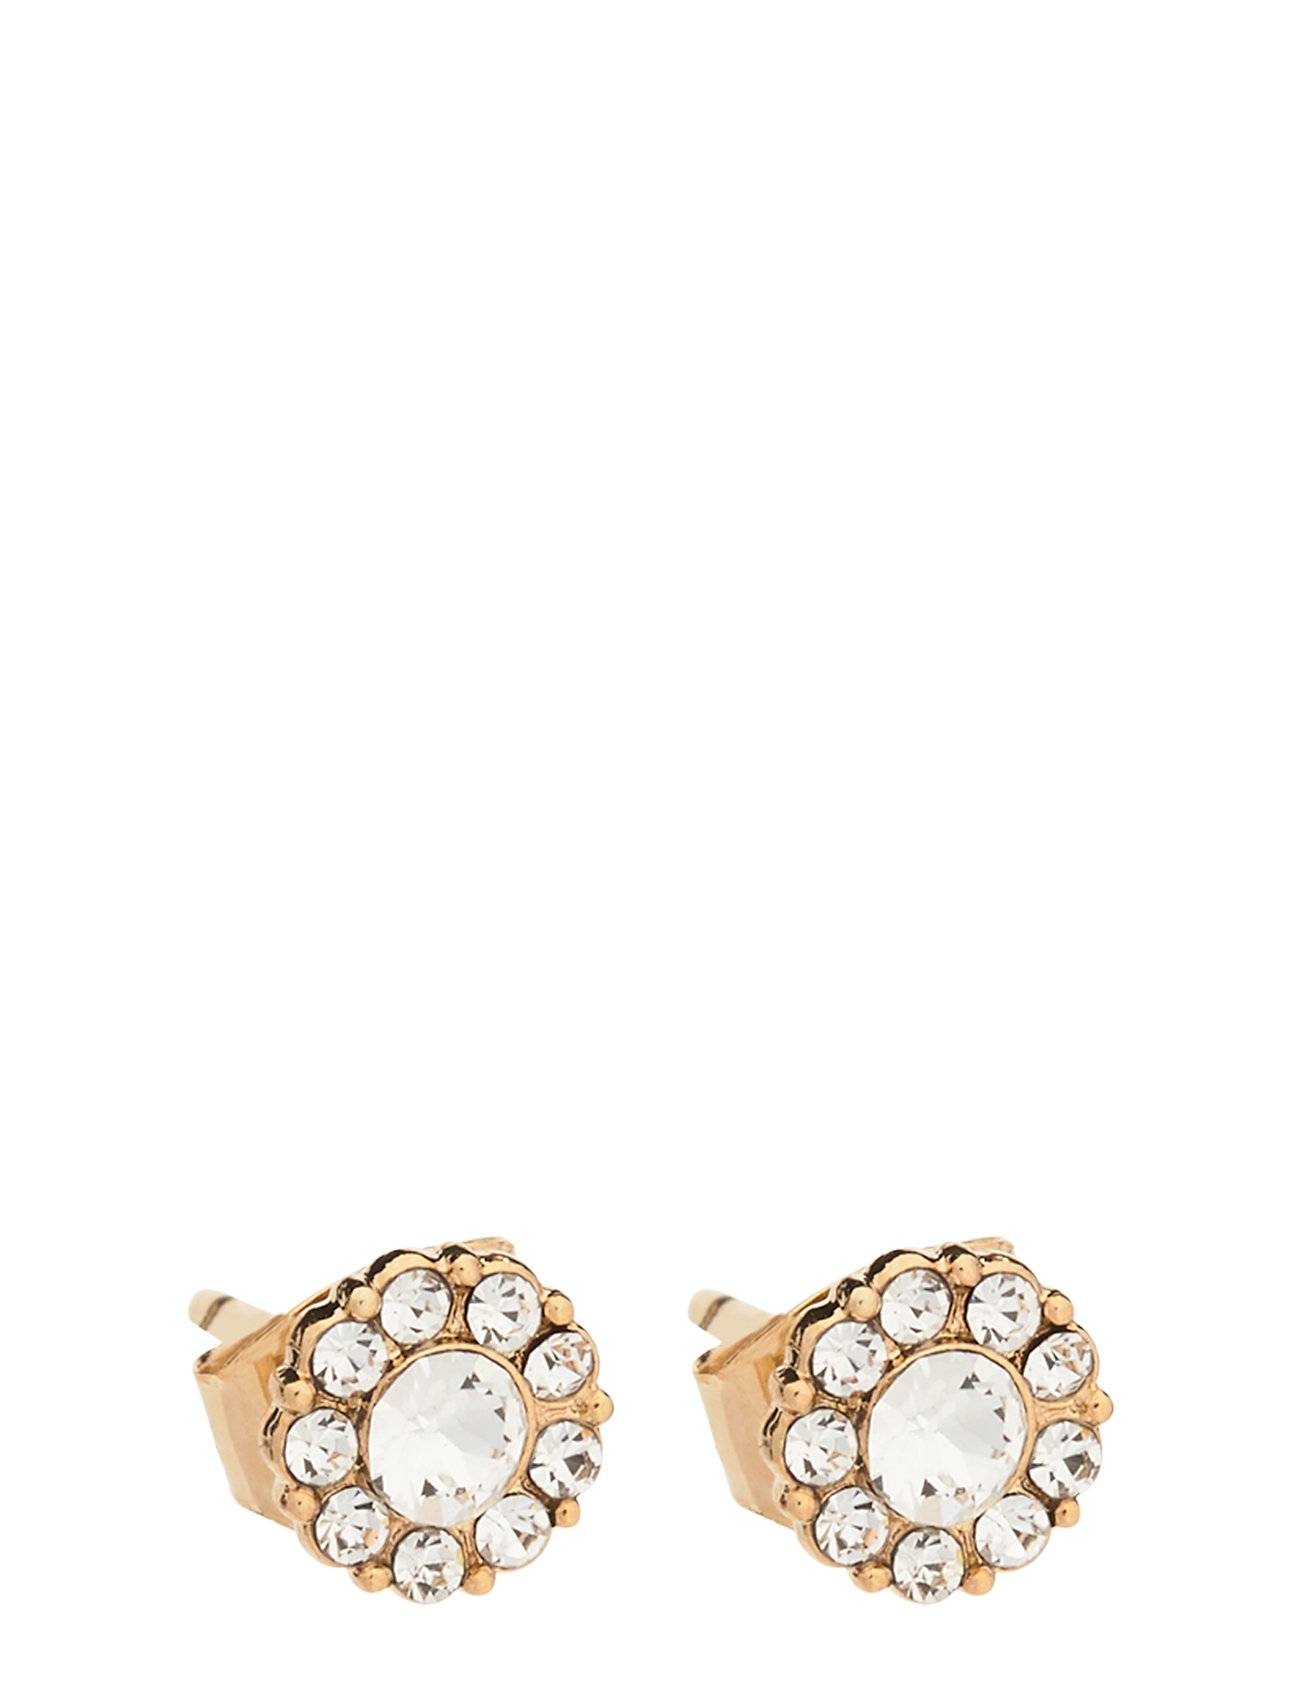 LILY AND ROSE Petite Miss Sofia Earrings - Crystal Accessories Jewellery Earrings Studs Kulta LILY AND ROSE